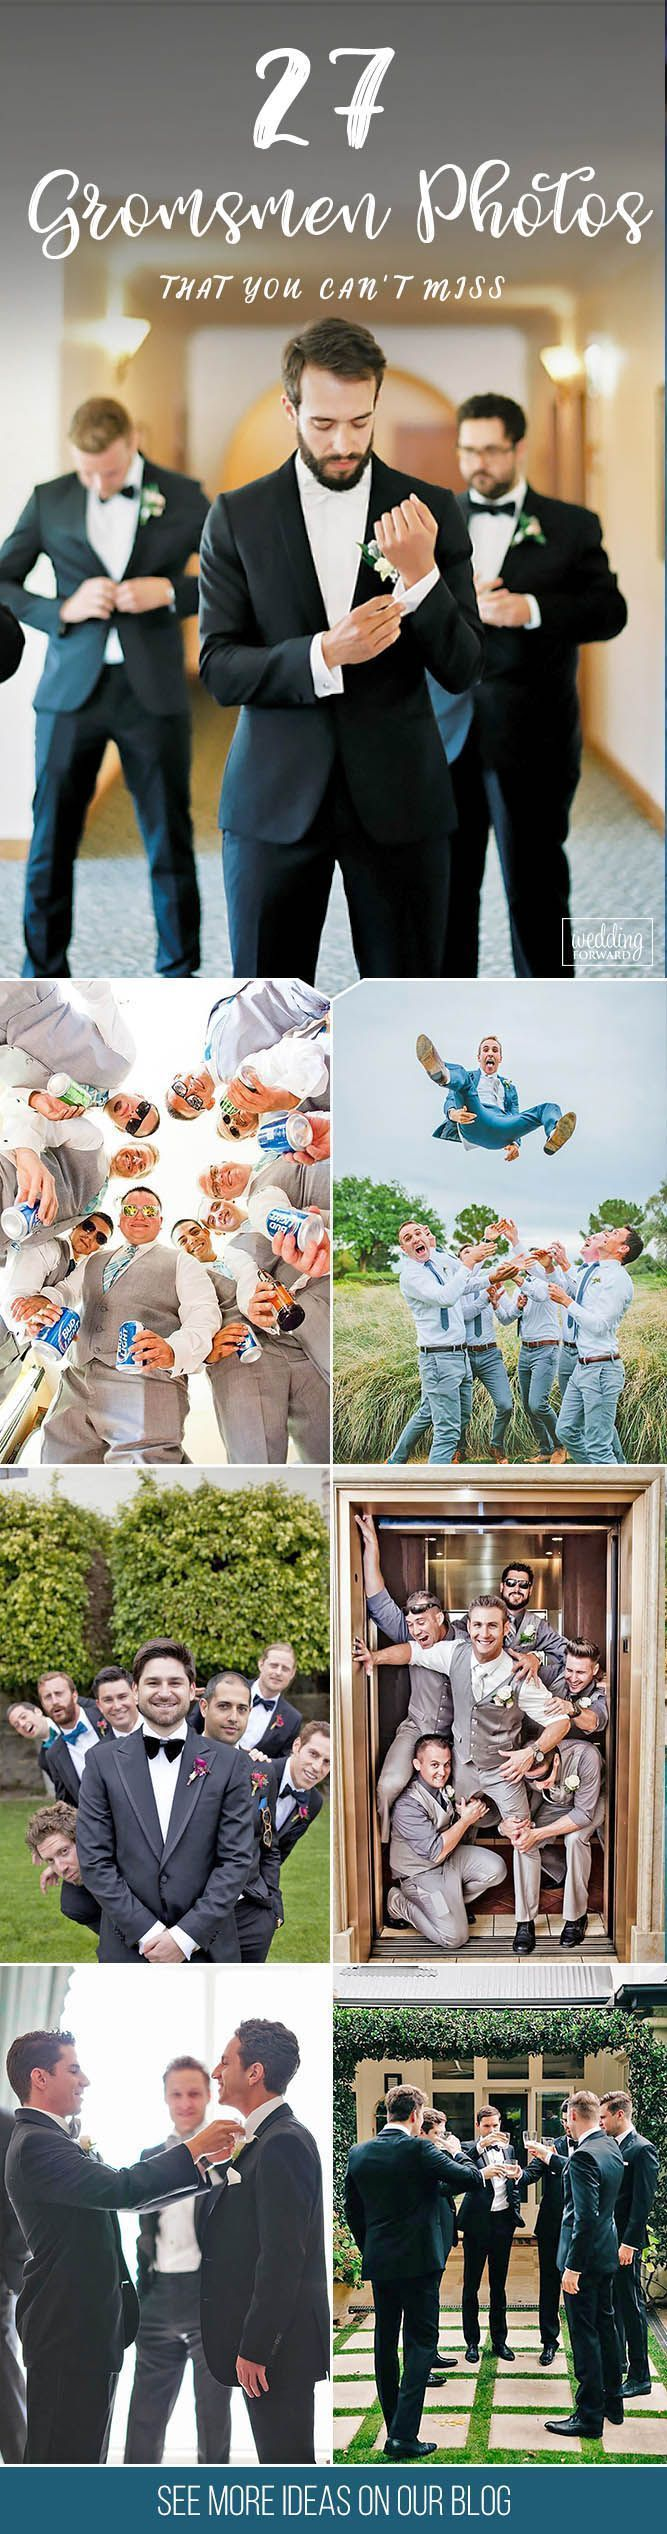 27 Awesome Groomsmen Photos You Can't Miss ❤️ You already got a list of must have photos with your bridesmaids. It's only fair we gathered a similar gallery of awesome groomsmen photos you can't miss! See more:      www.weddingforwar... # groom #groomsmen